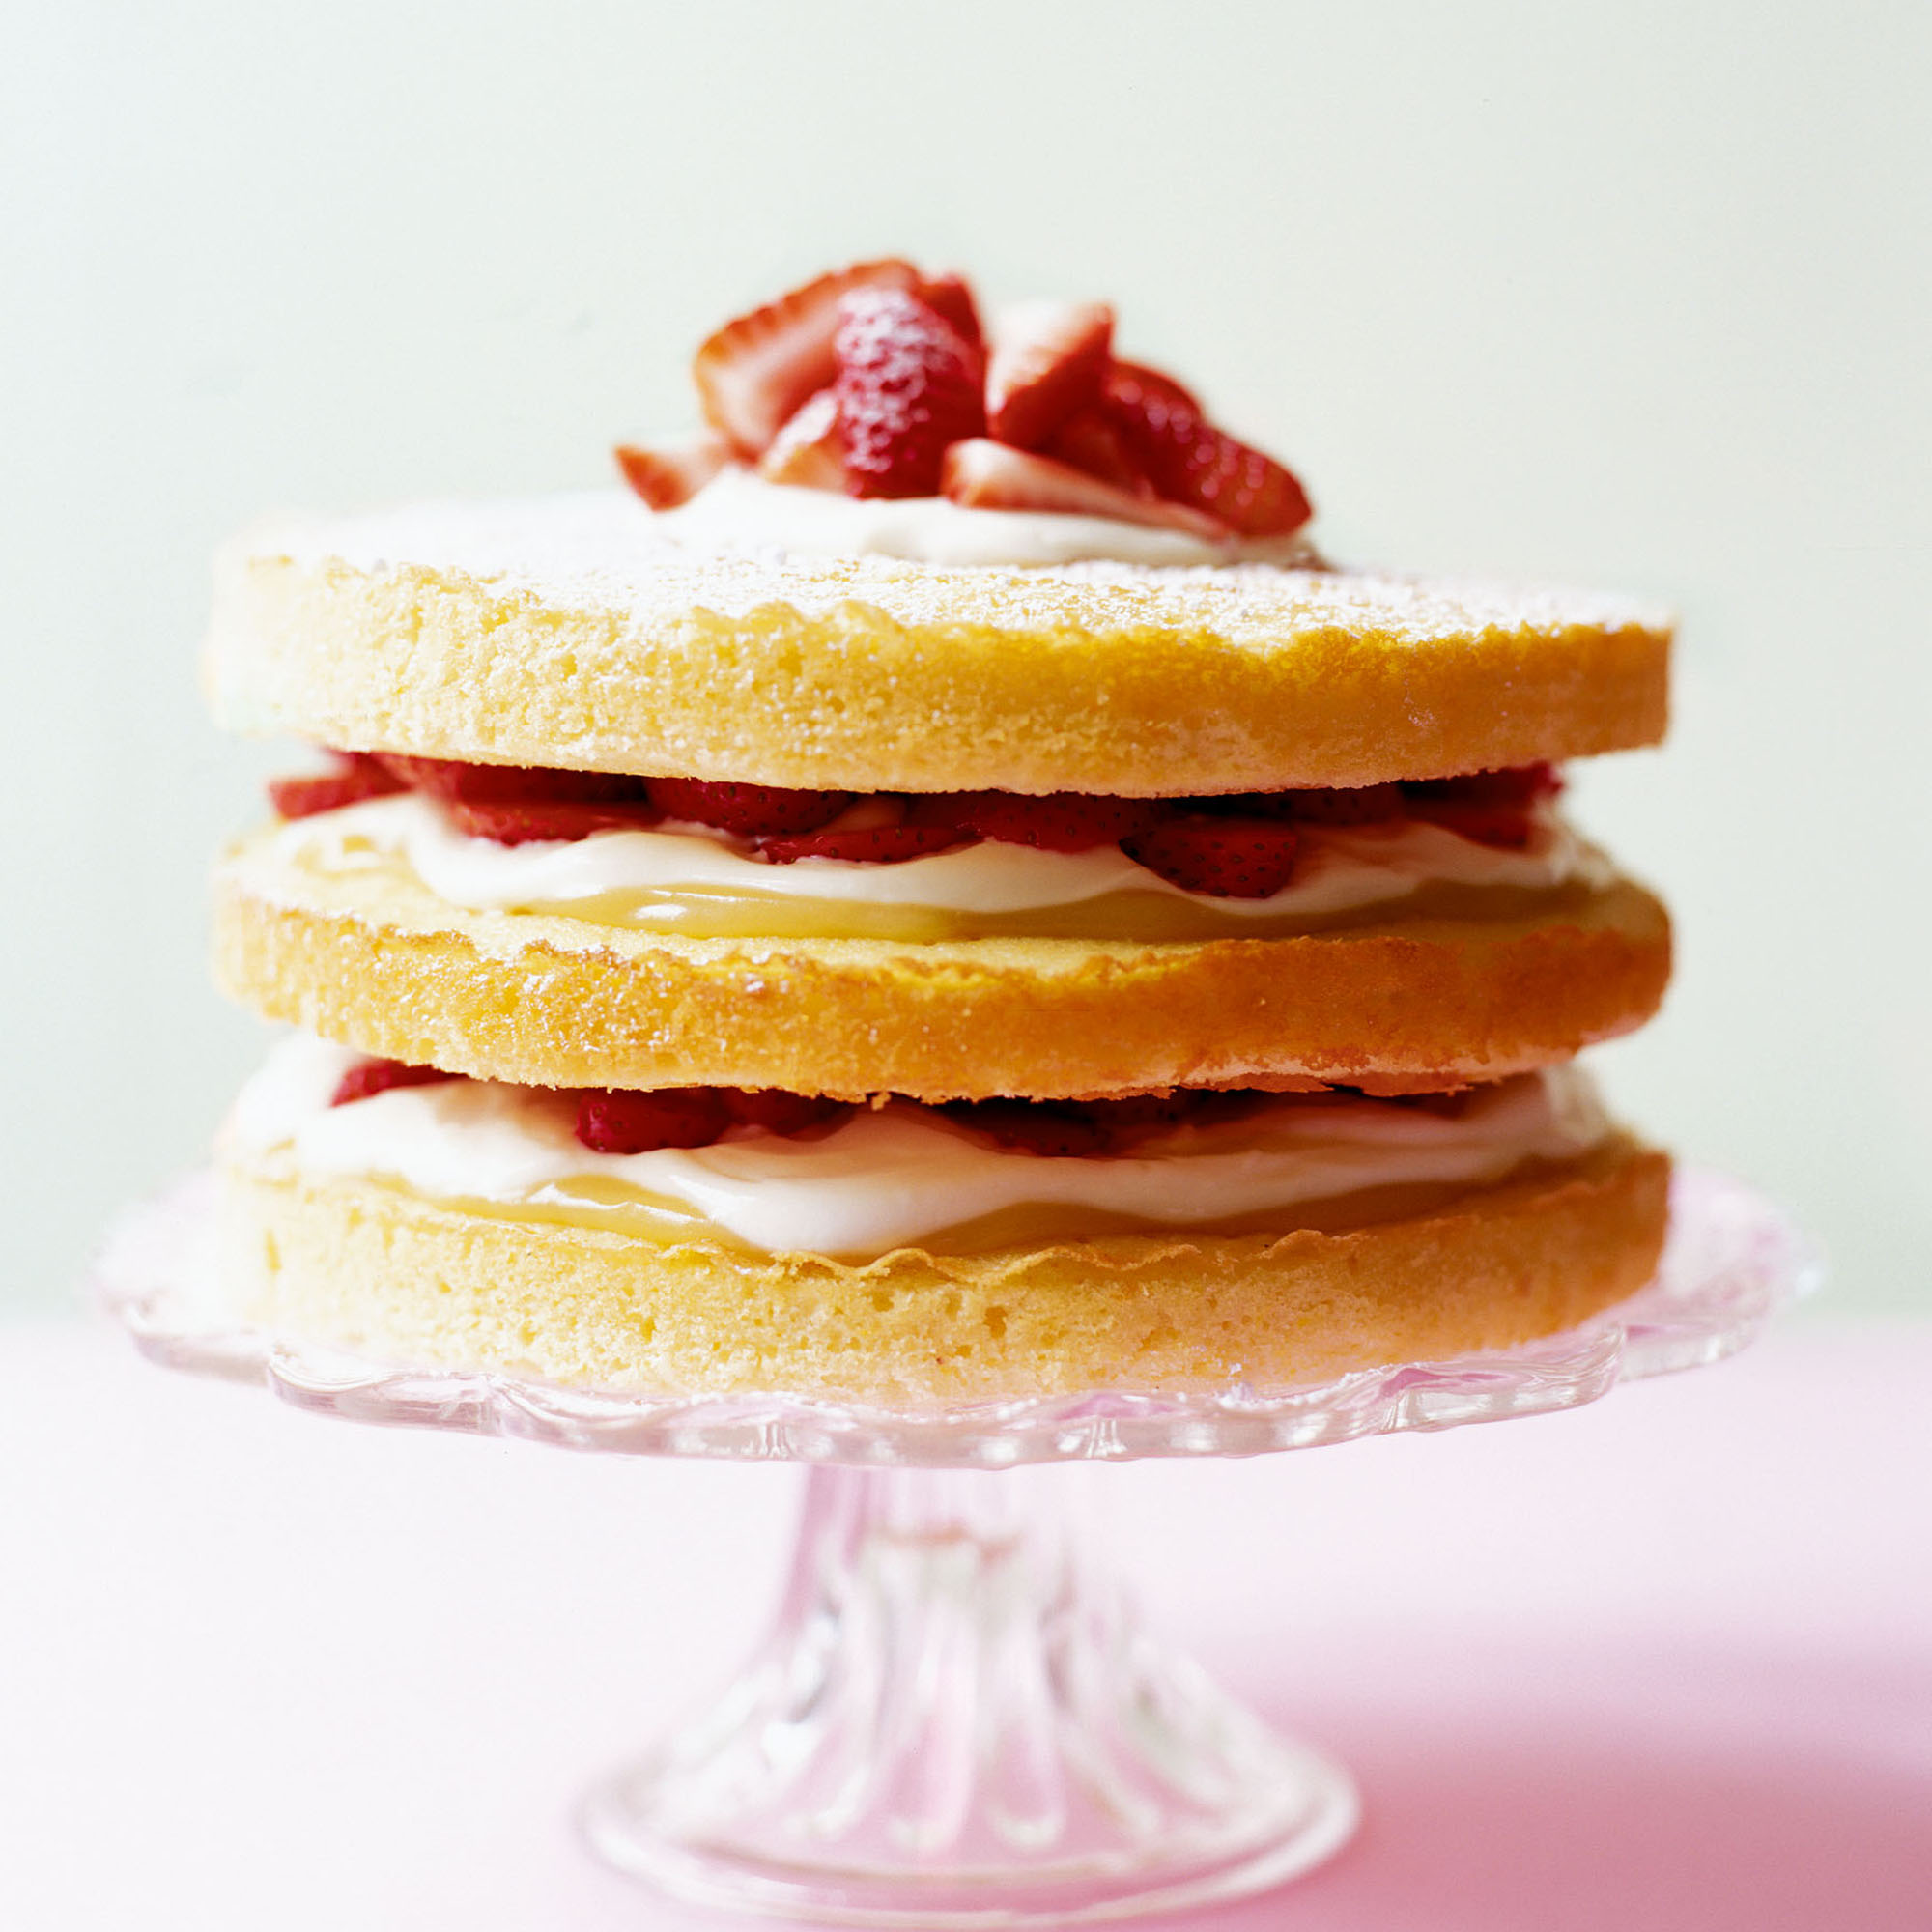 Strawberry and Lemon TripleLayer Cake